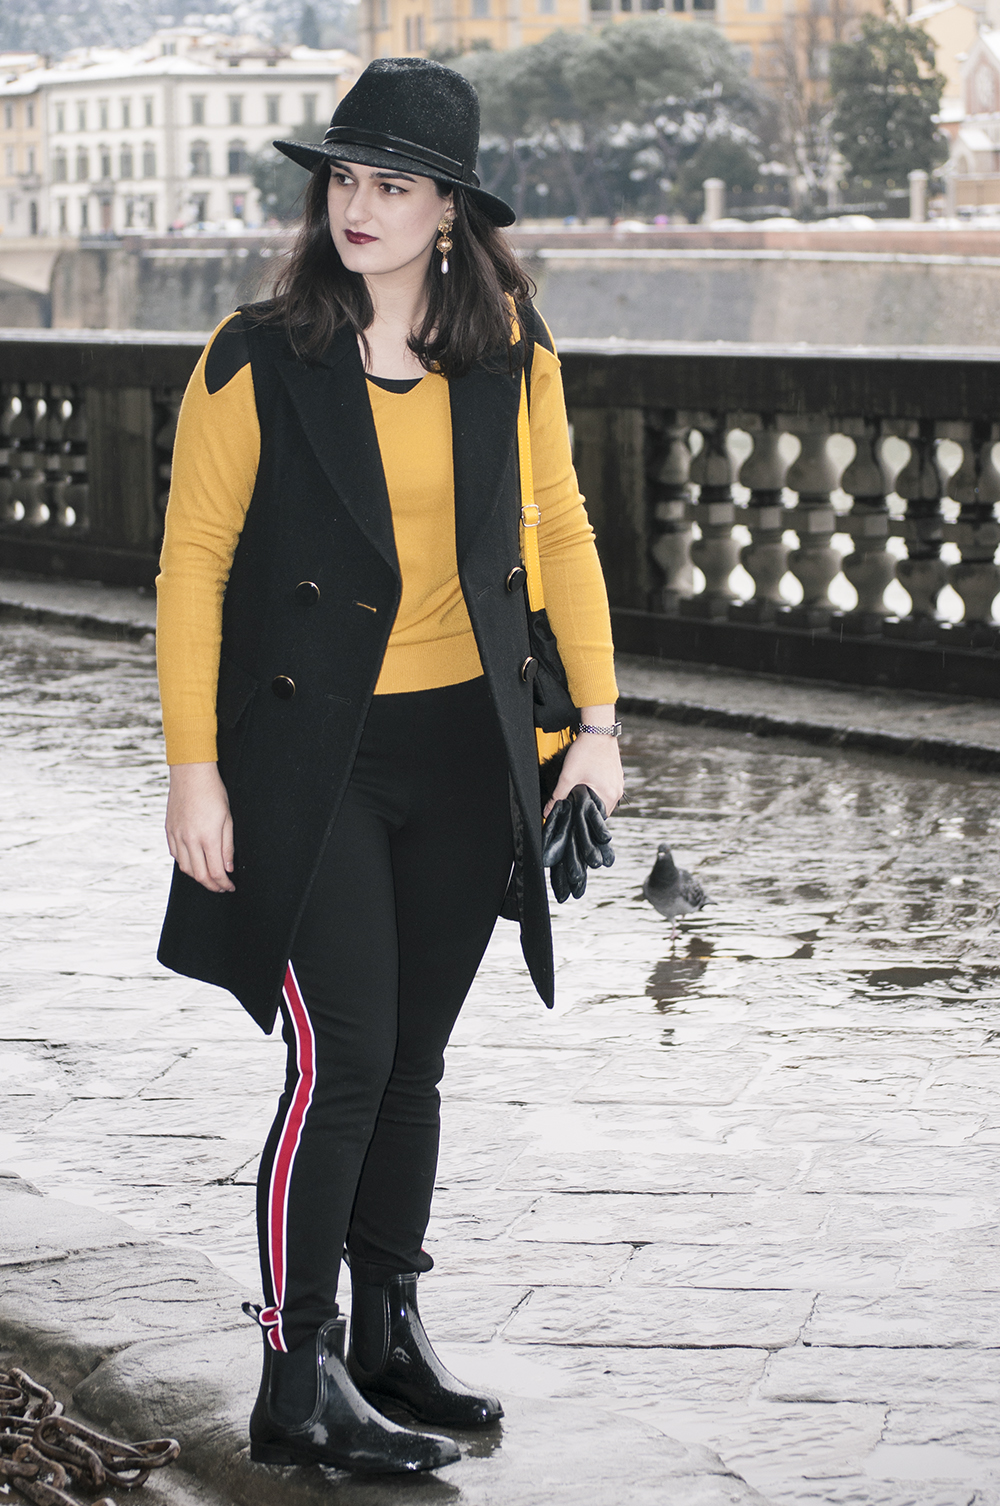 somethingfashion blogger firenze collaboration outfit casual mustard top jersey shein vest firenze snow pontevecchio_0711